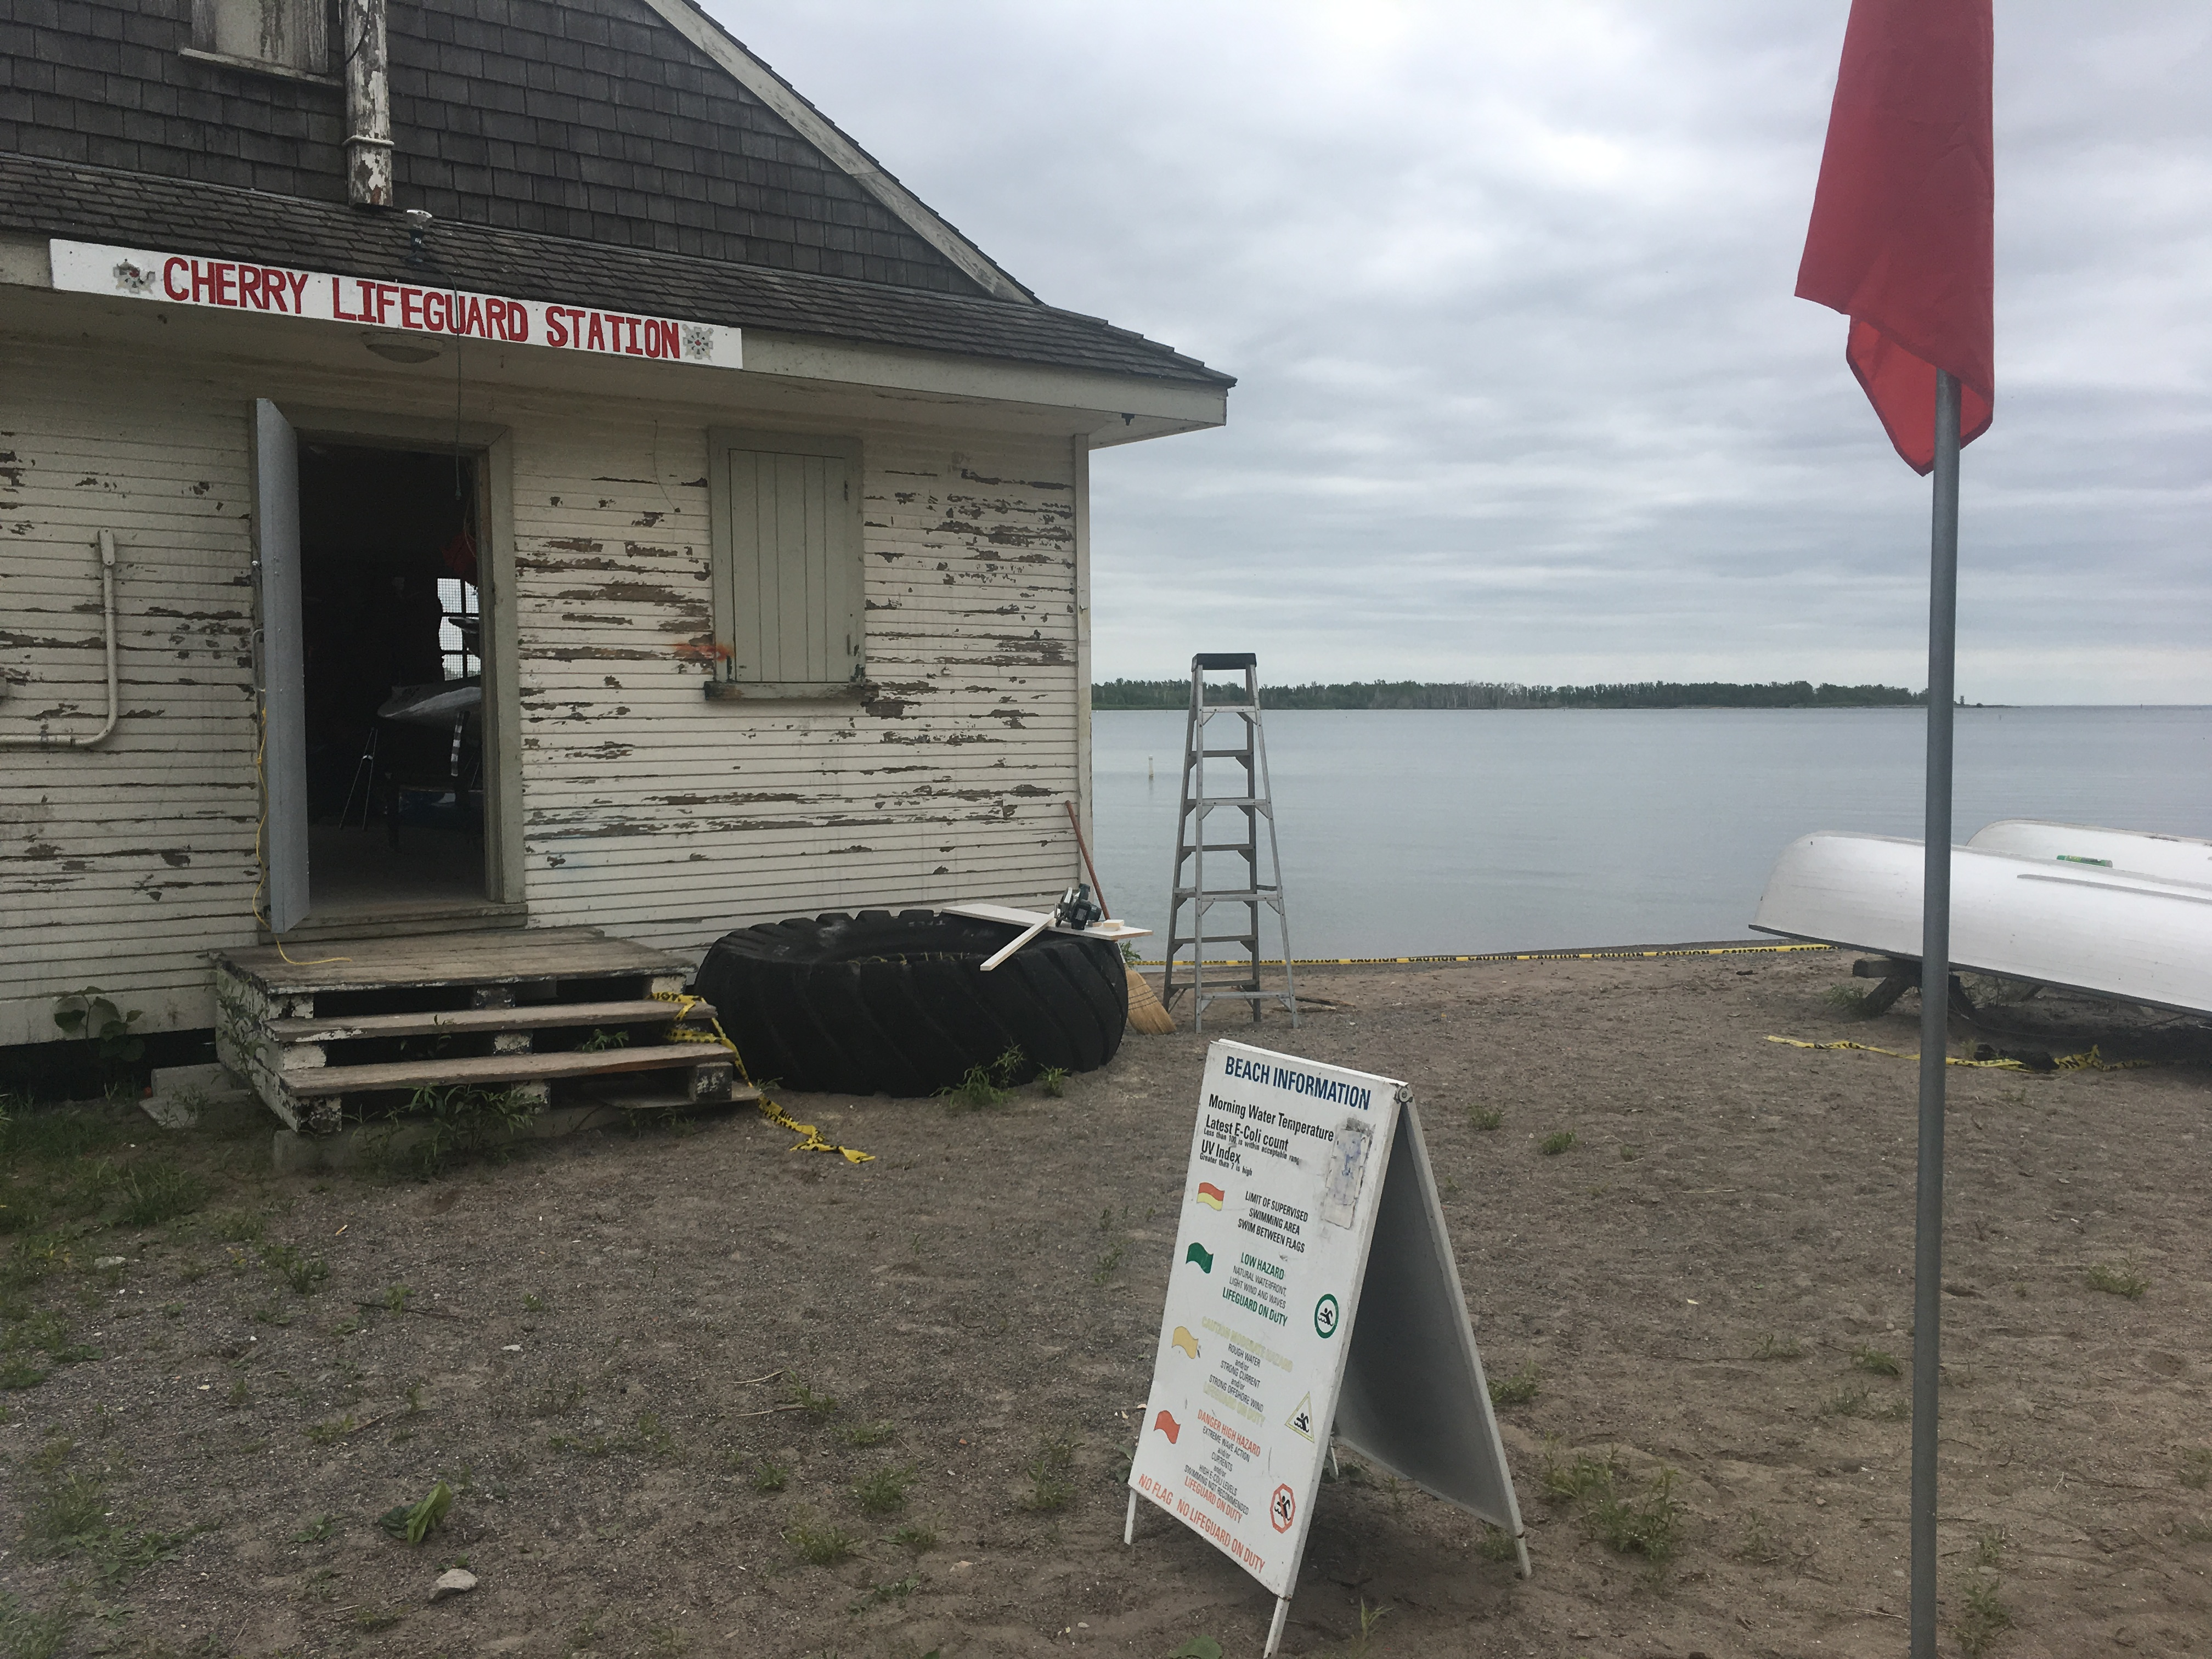 2:18 p.m. June 5, 2018. Lifeguards on duty post information including a flag indicating if the water is deemed safe to swim according to the E. coli quality.